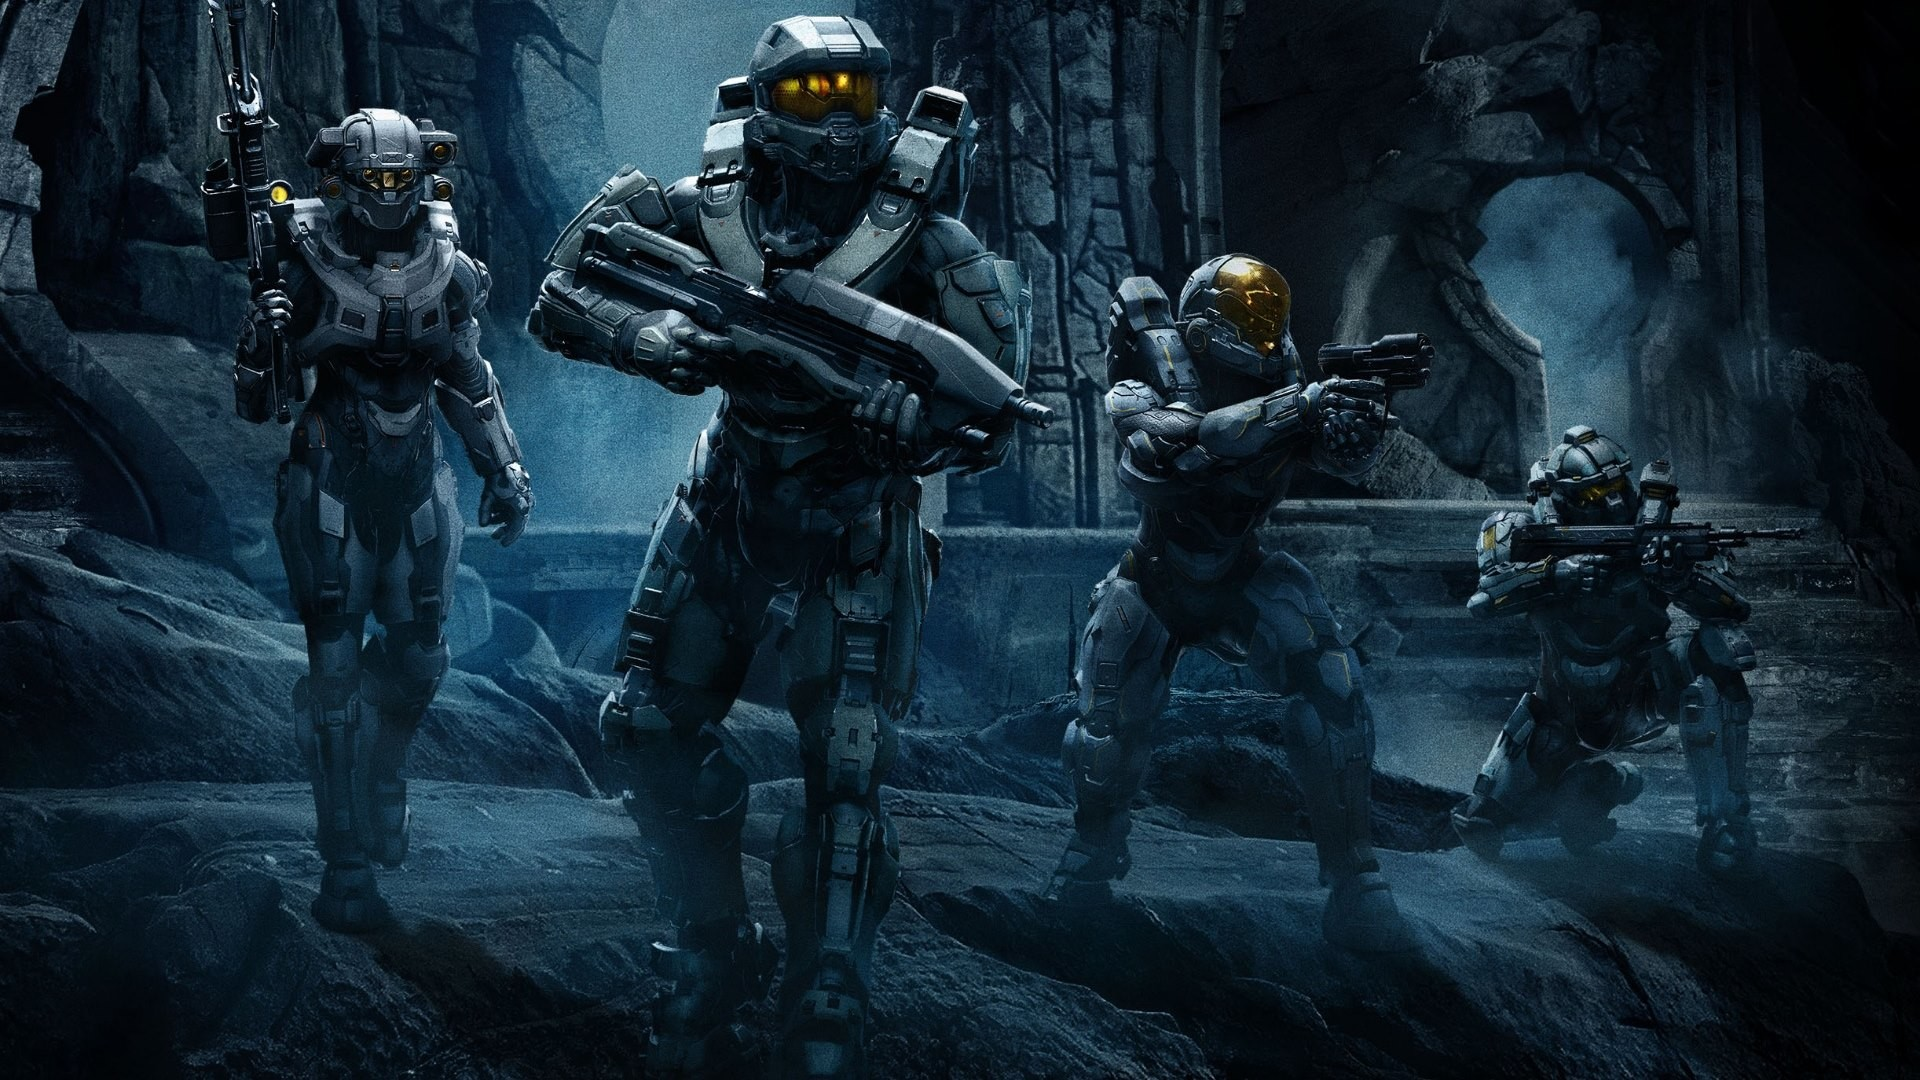 The 3rd wallpaper is with Halo 5 Guardians Team Chief